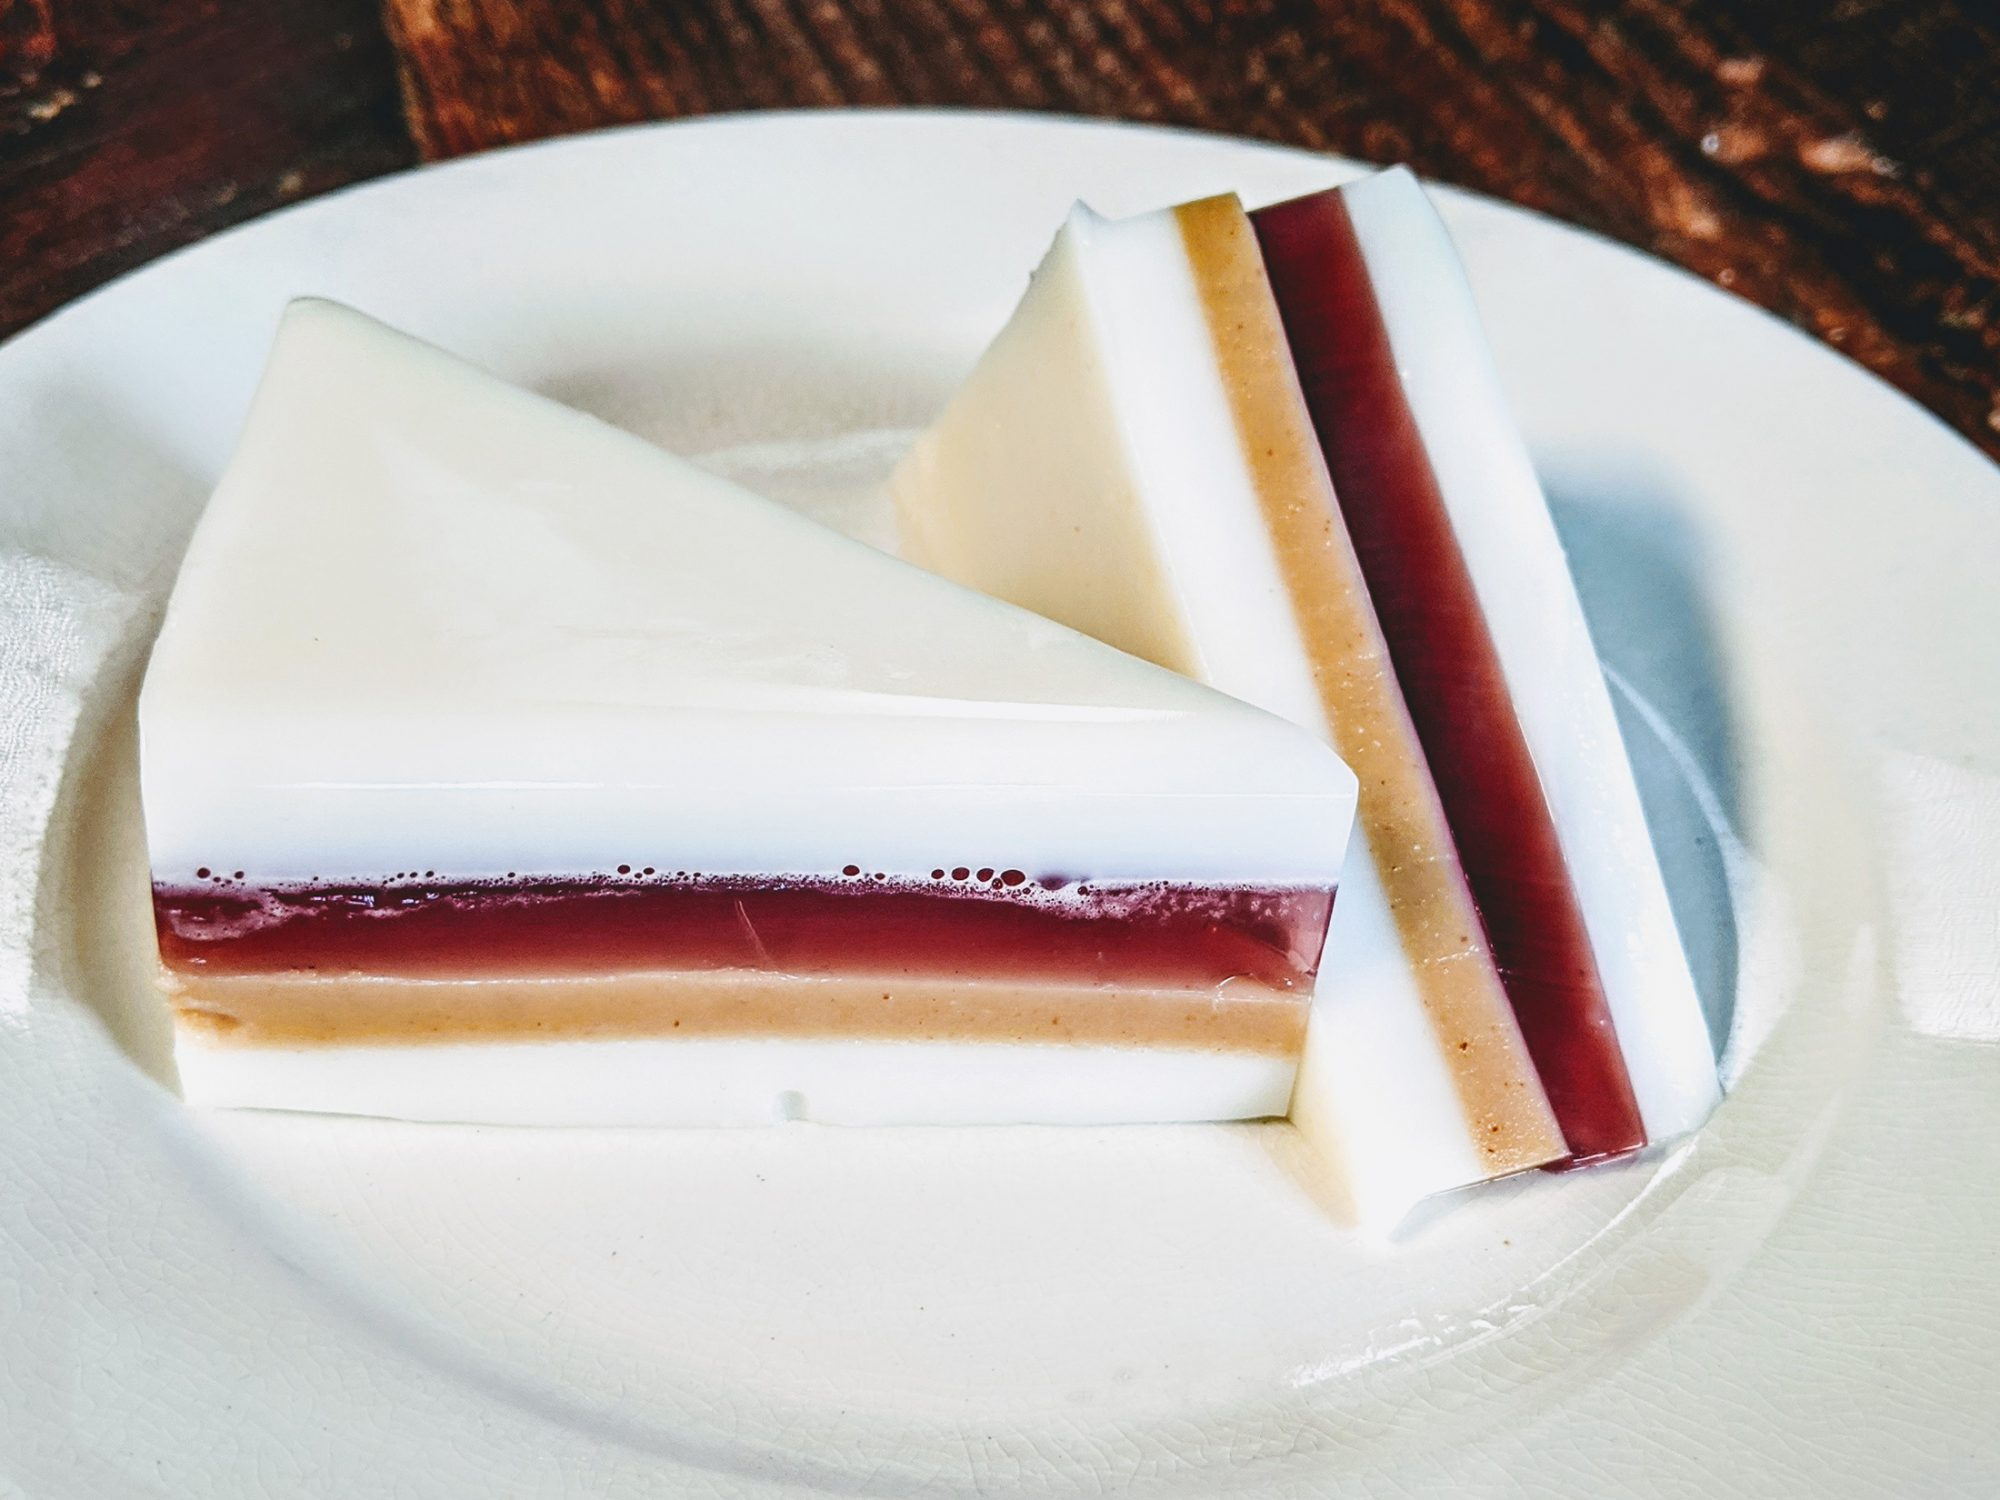 Smooth Peanut Butter-And-Jelly Sandwich image